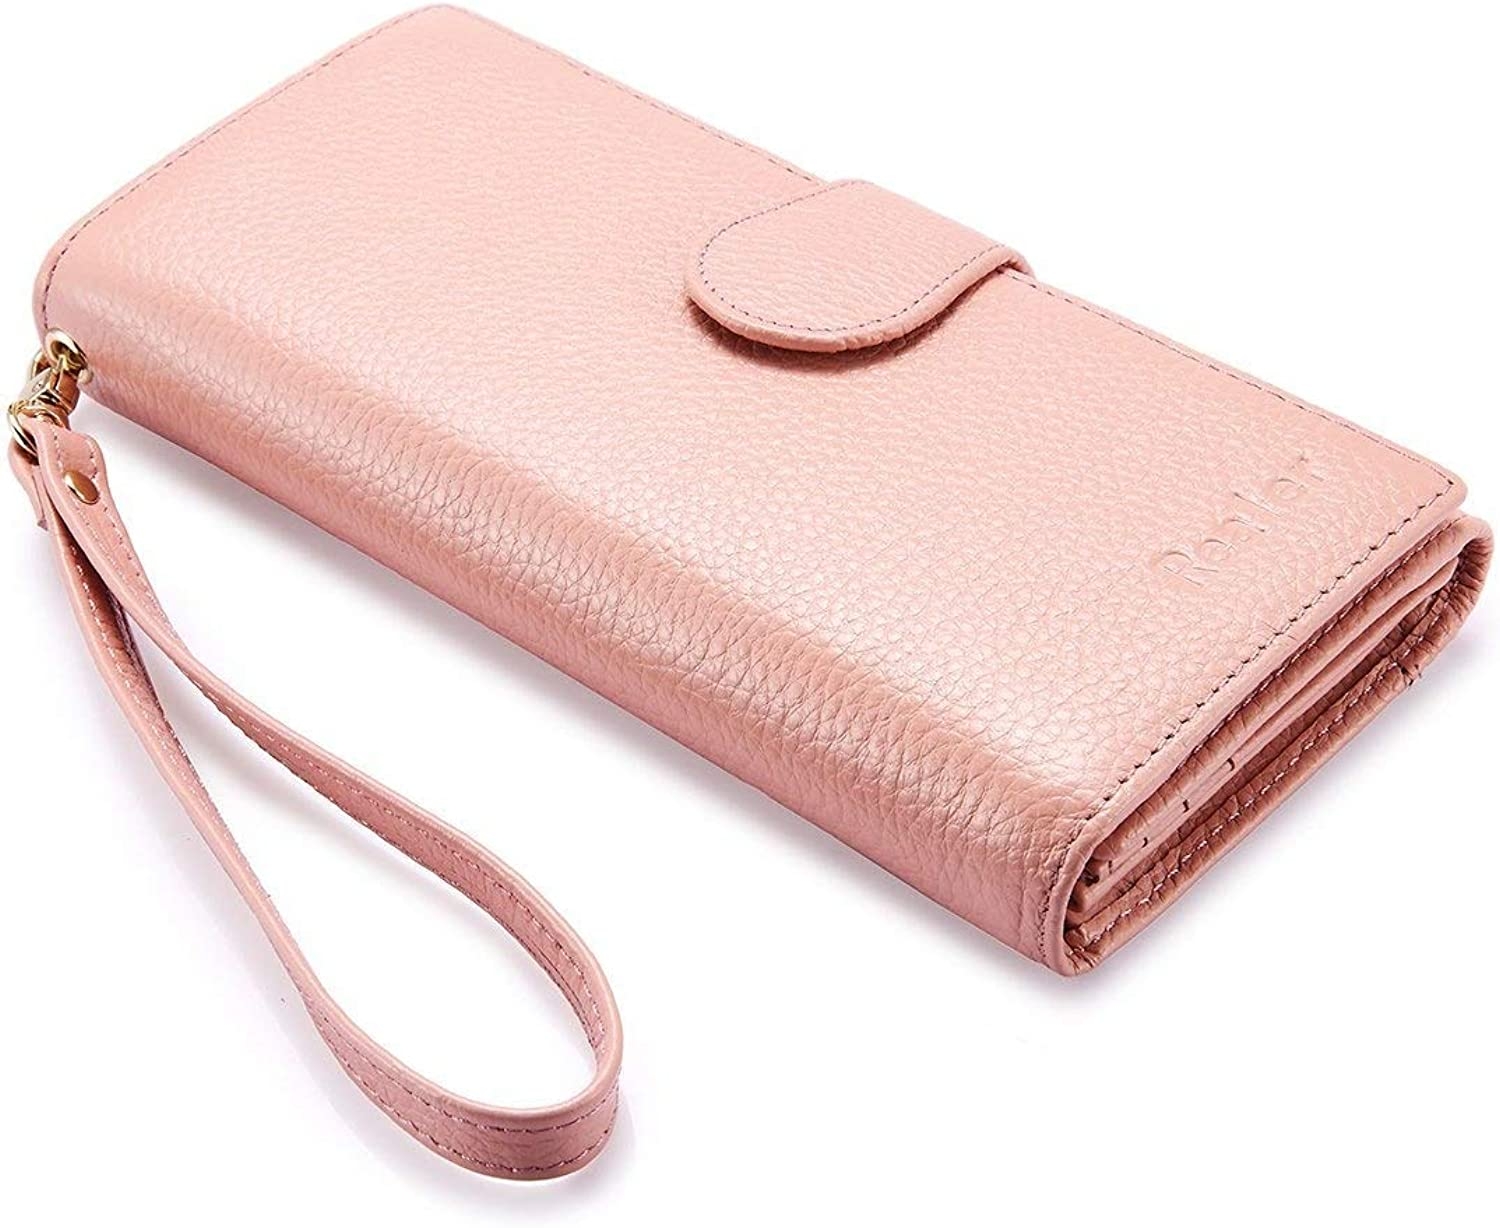 Wallets for Women Rfid Blocking Genuine Leather Long Ladies Wallet Purse with Wristlet Strap Bifold